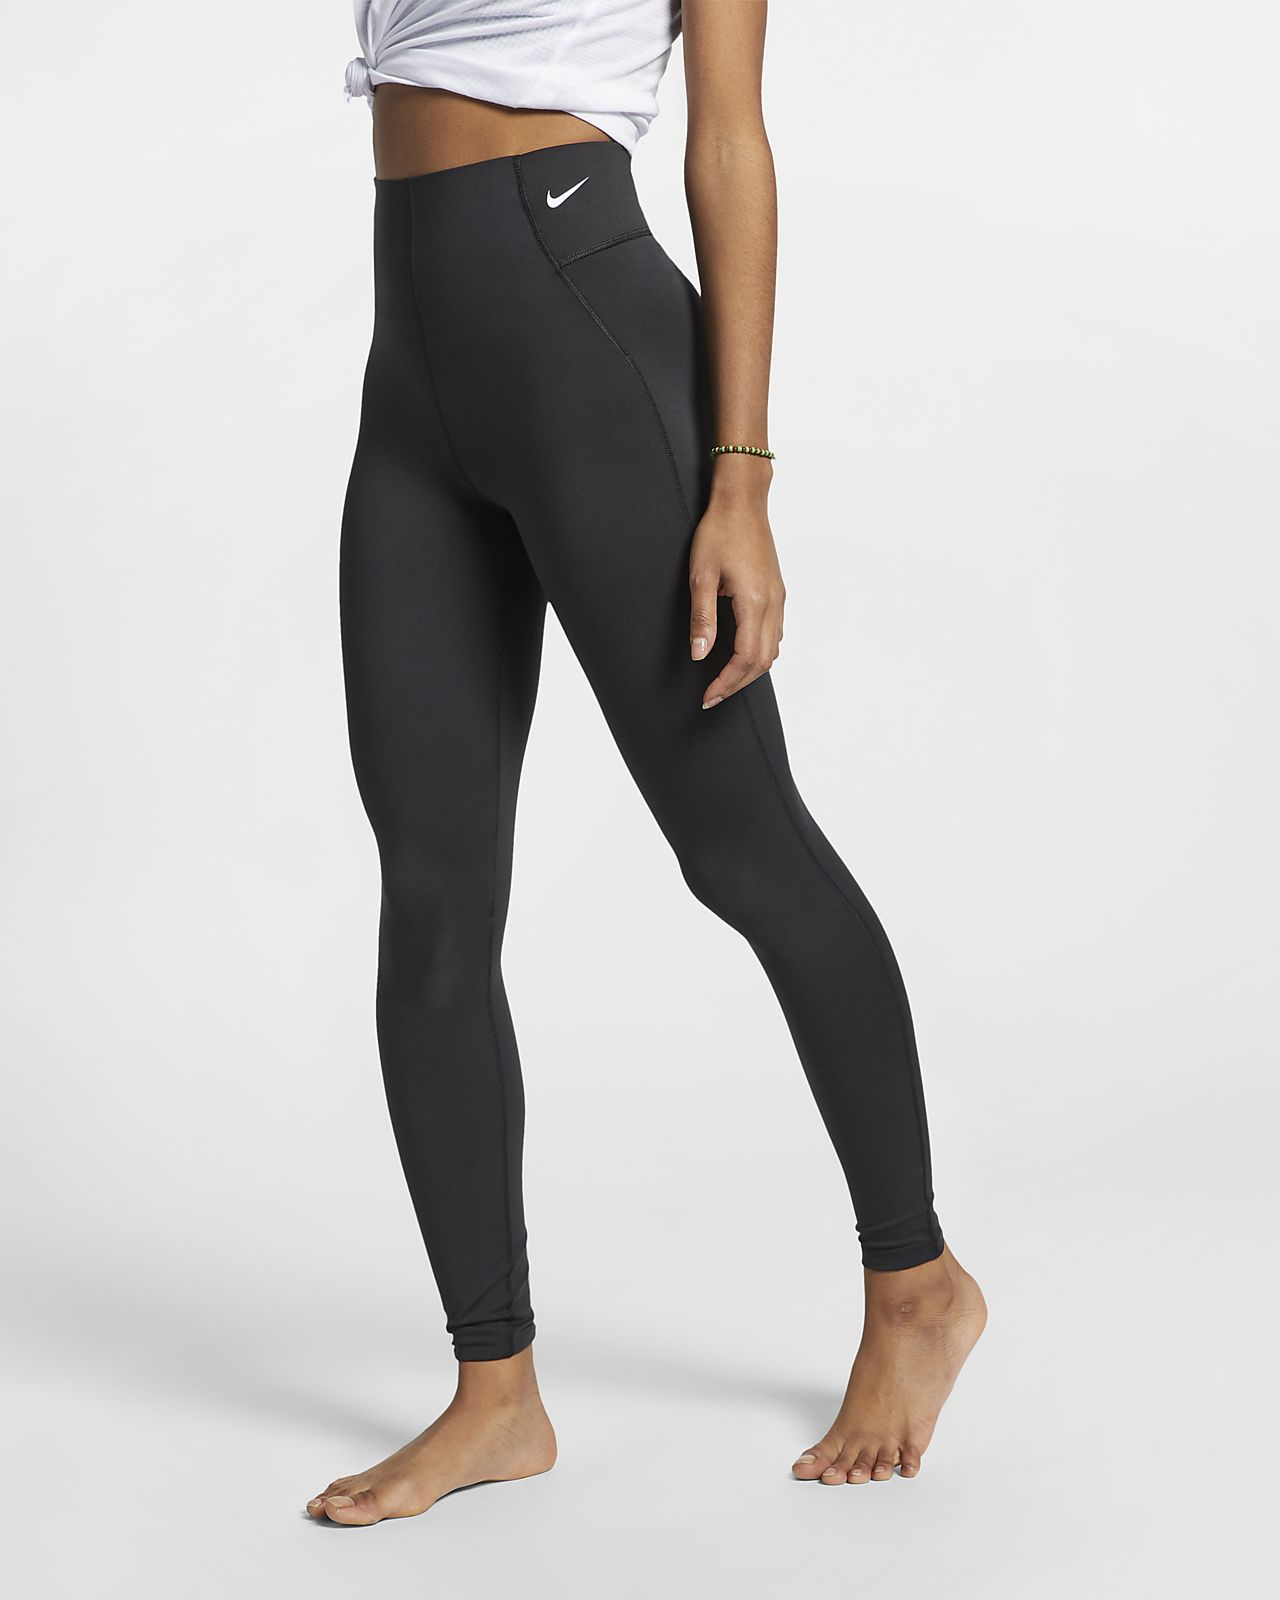 Nike Sculpt Yoga-Trainings-Tights für Damen